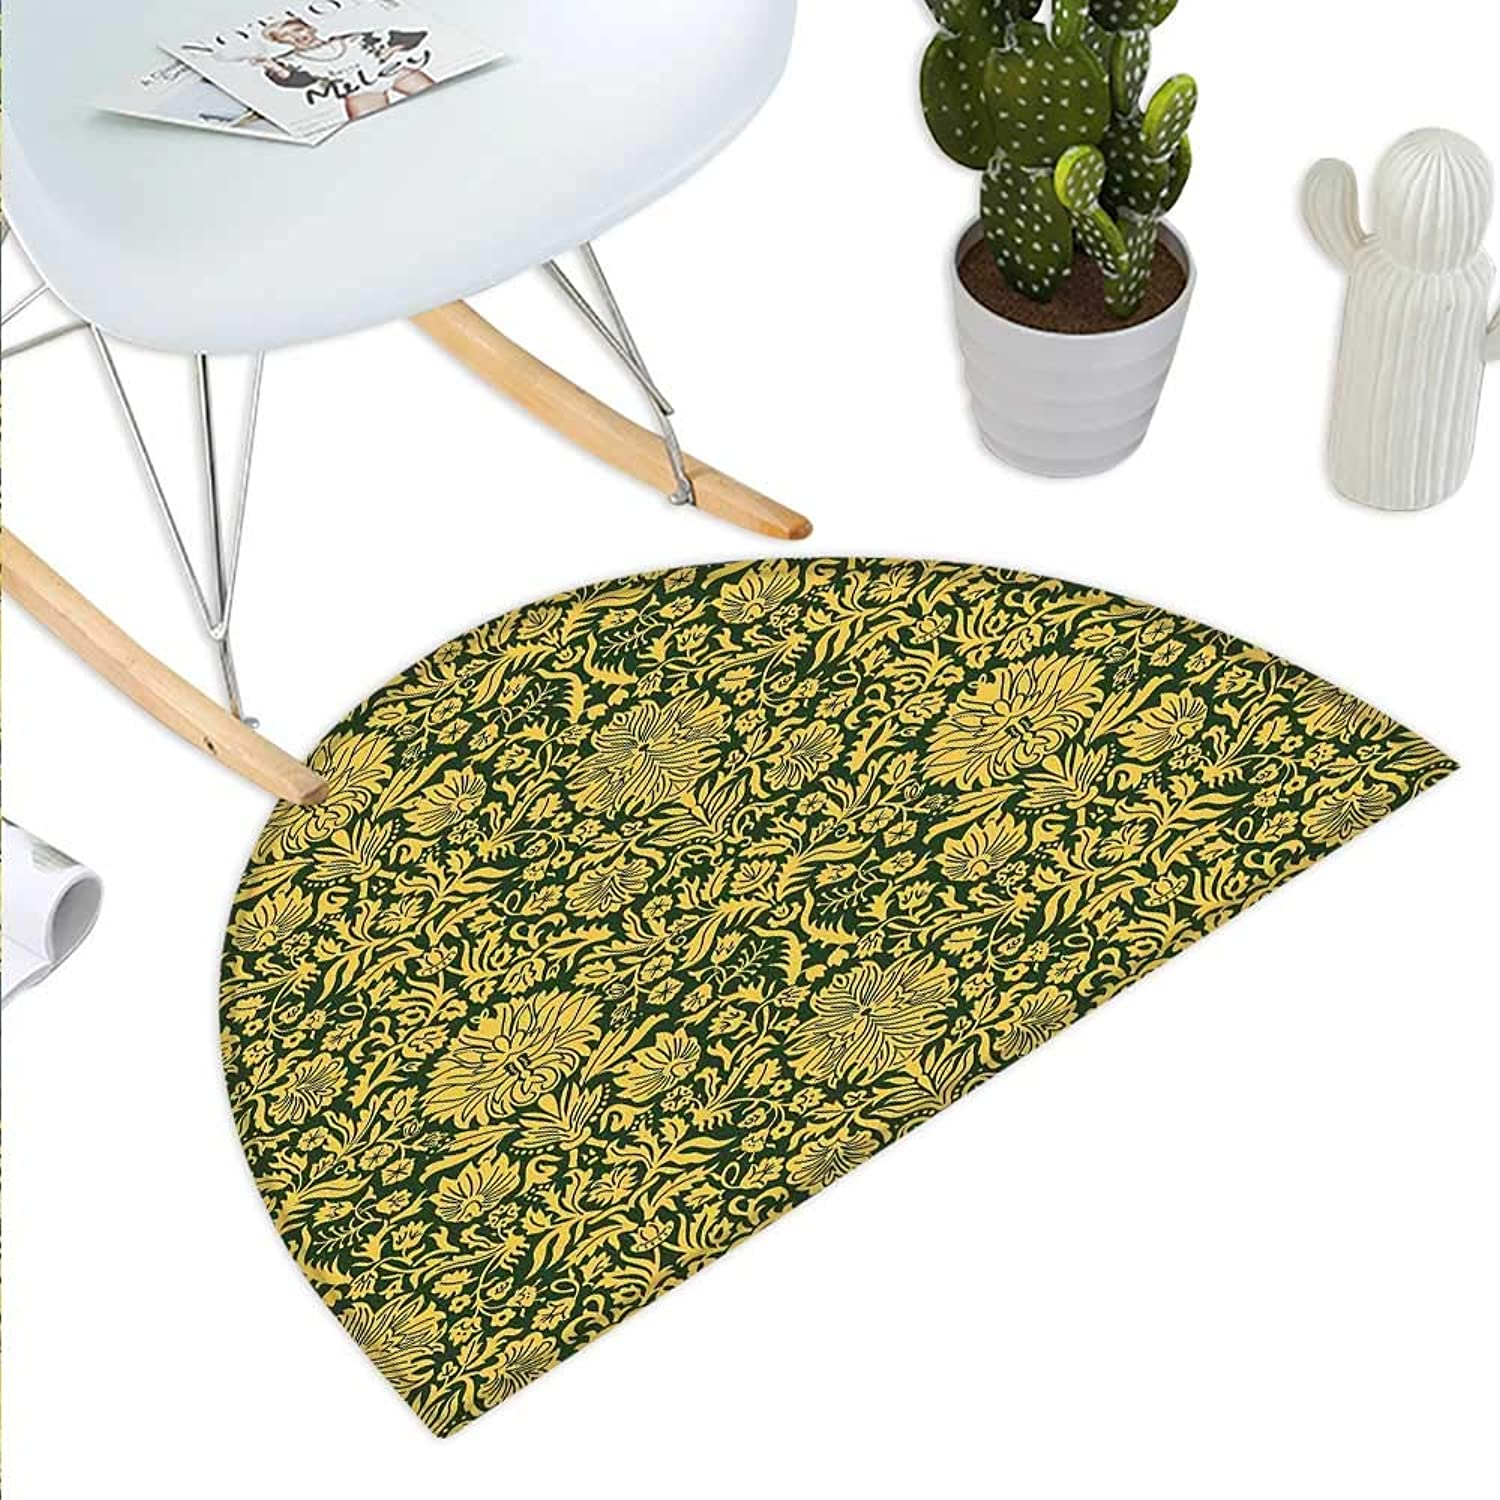 Floral Semicircle Doormat Victorian Baroque Flower Motifs with Swirl Petals and Branches Print Halfmoon doormats H 43.3  xD 64.9  Hunter Green Earth Yellow